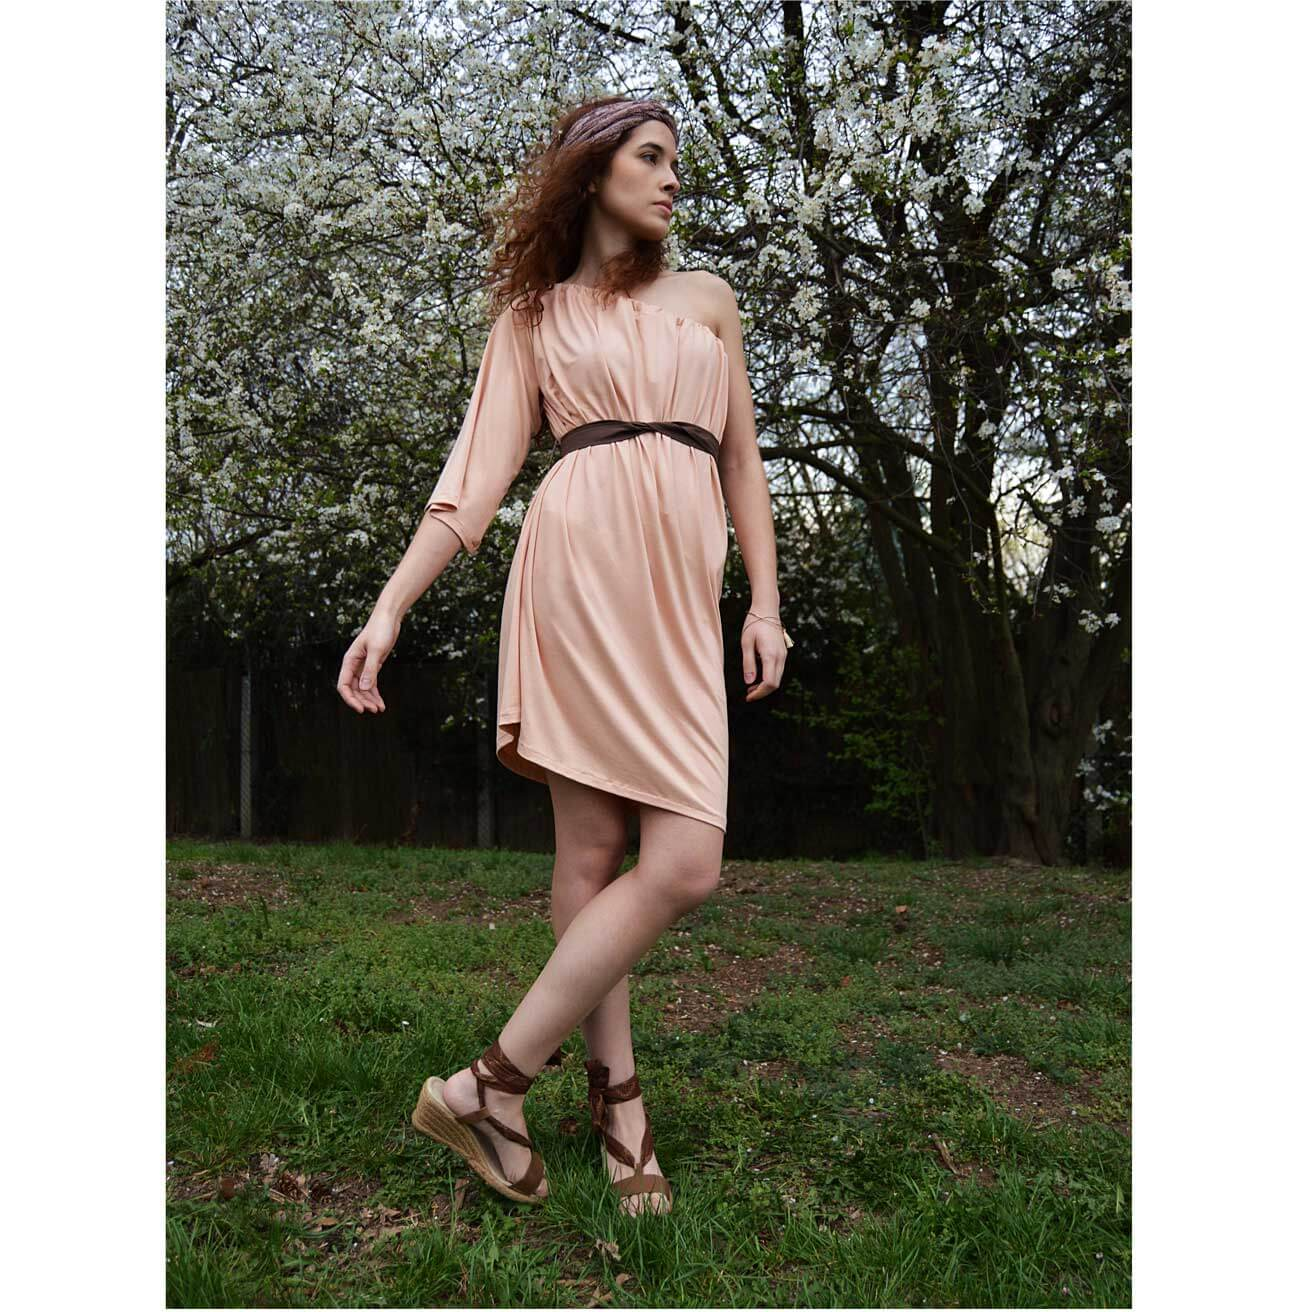 Salmon pink dress with one sleeve. You can wear the dress in other ways too.